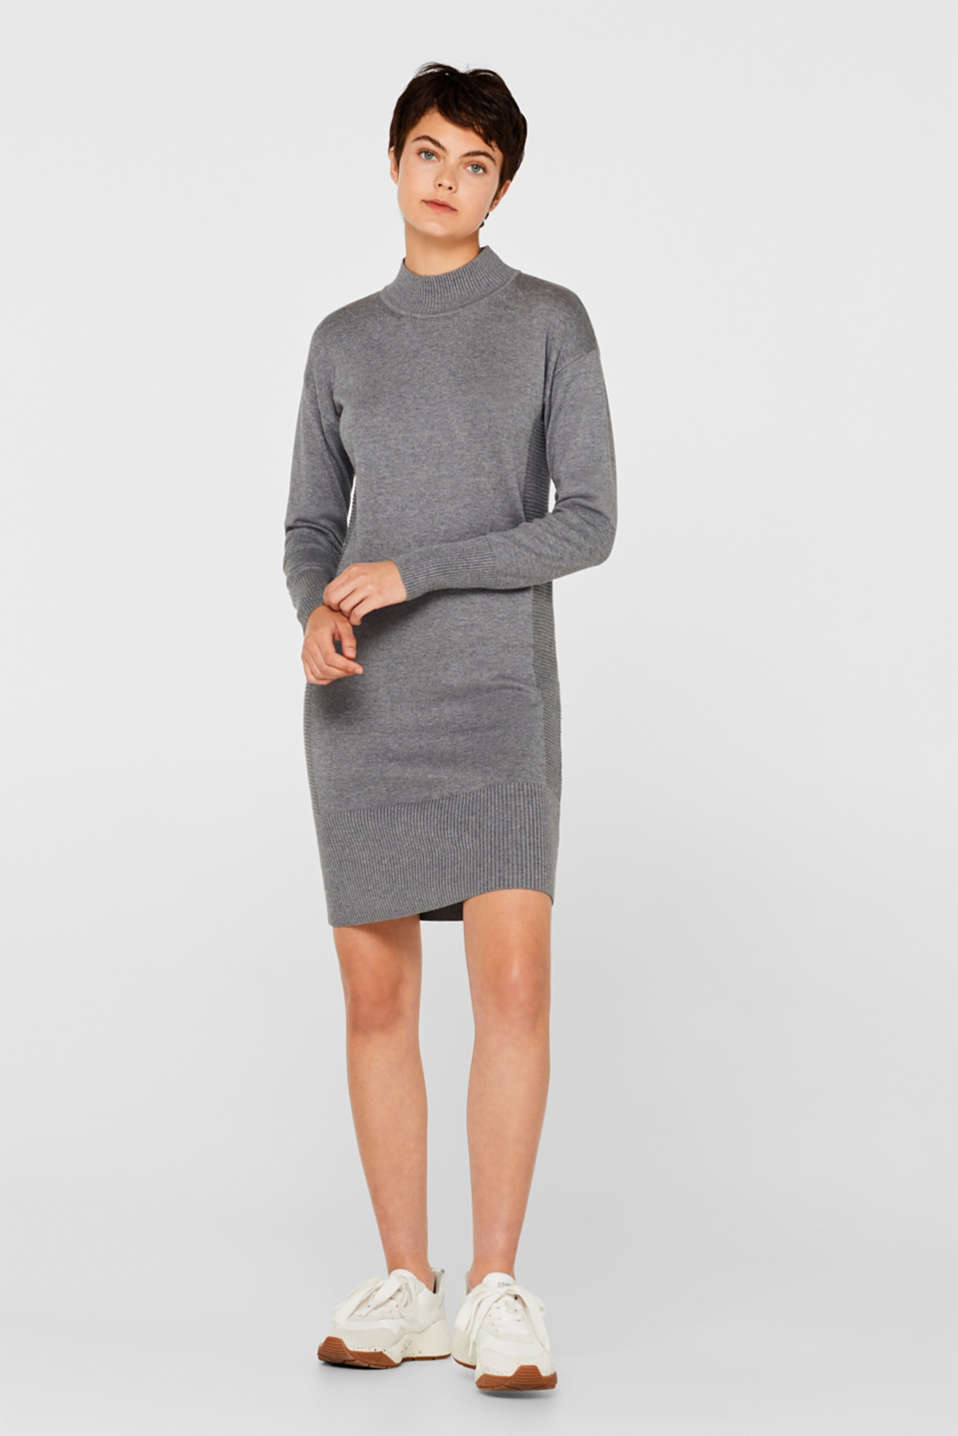 Knitted dress with texture effects, GUNMETAL 5, detail image number 5